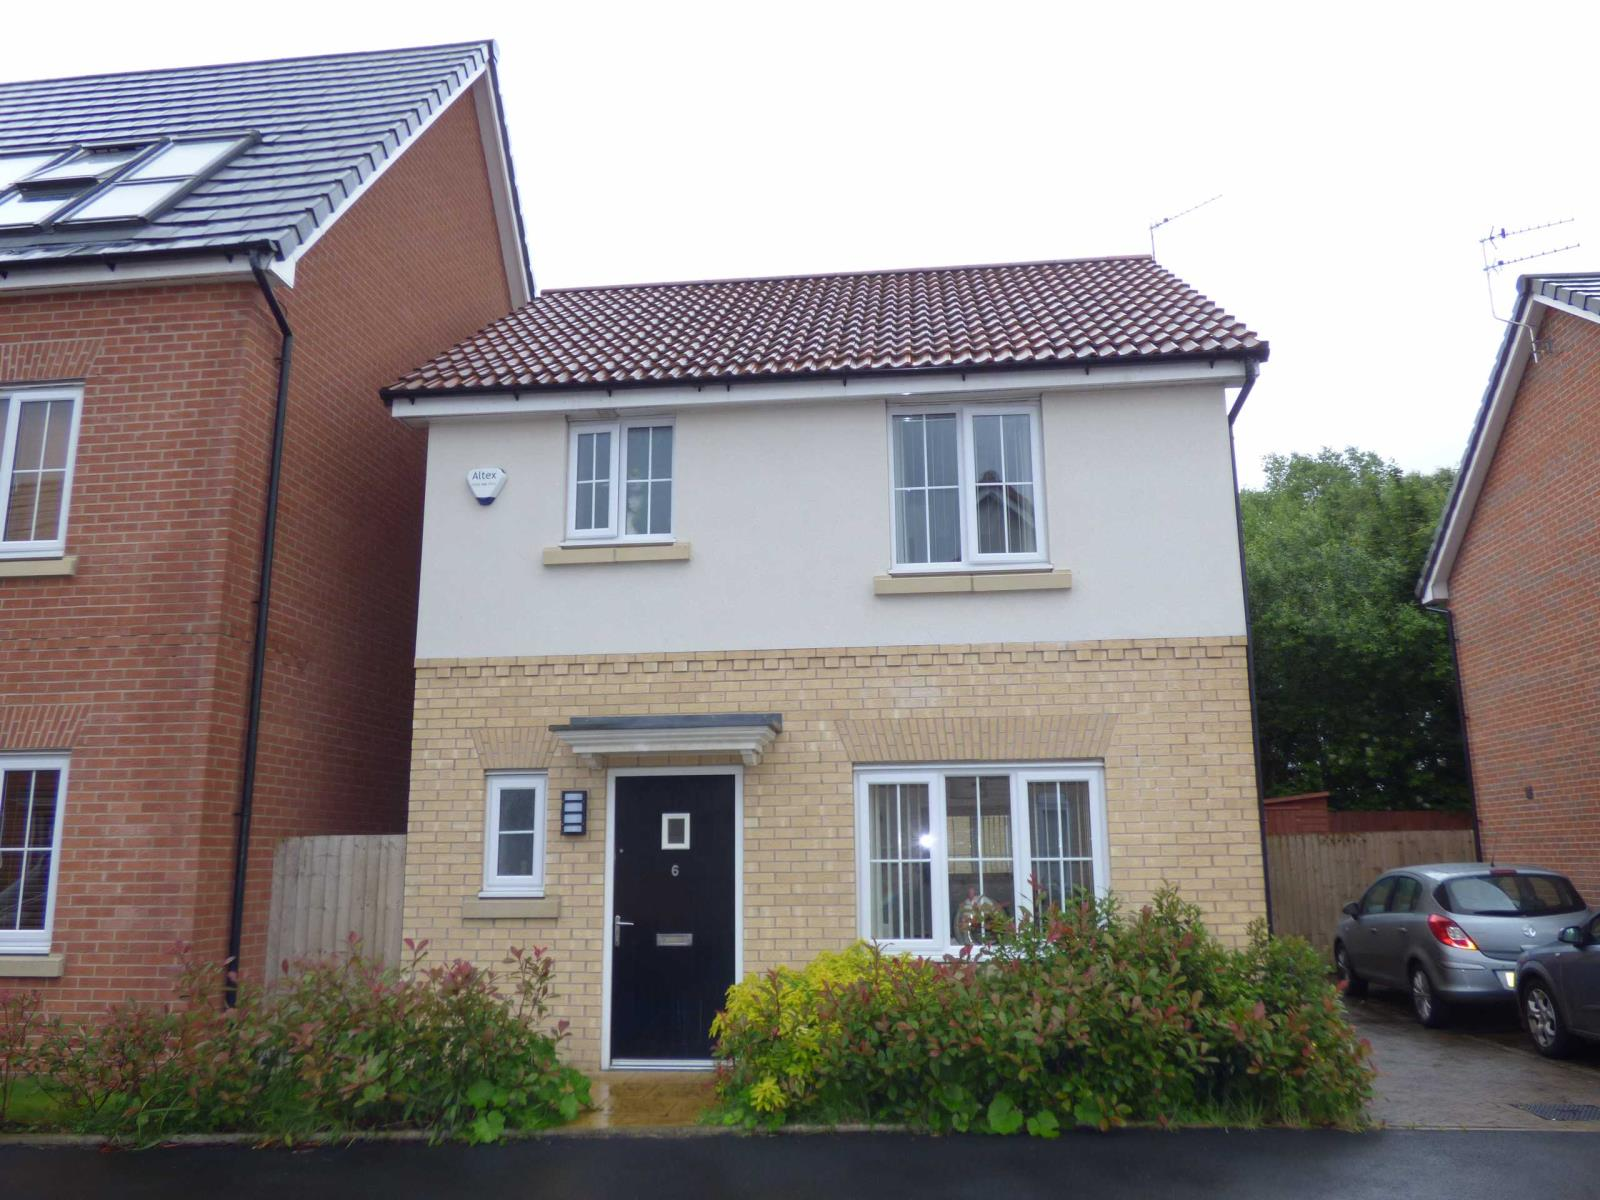 3 Bedrooms Detached House for sale in Fustian Avenue, Heywood, Lancashire, OL10